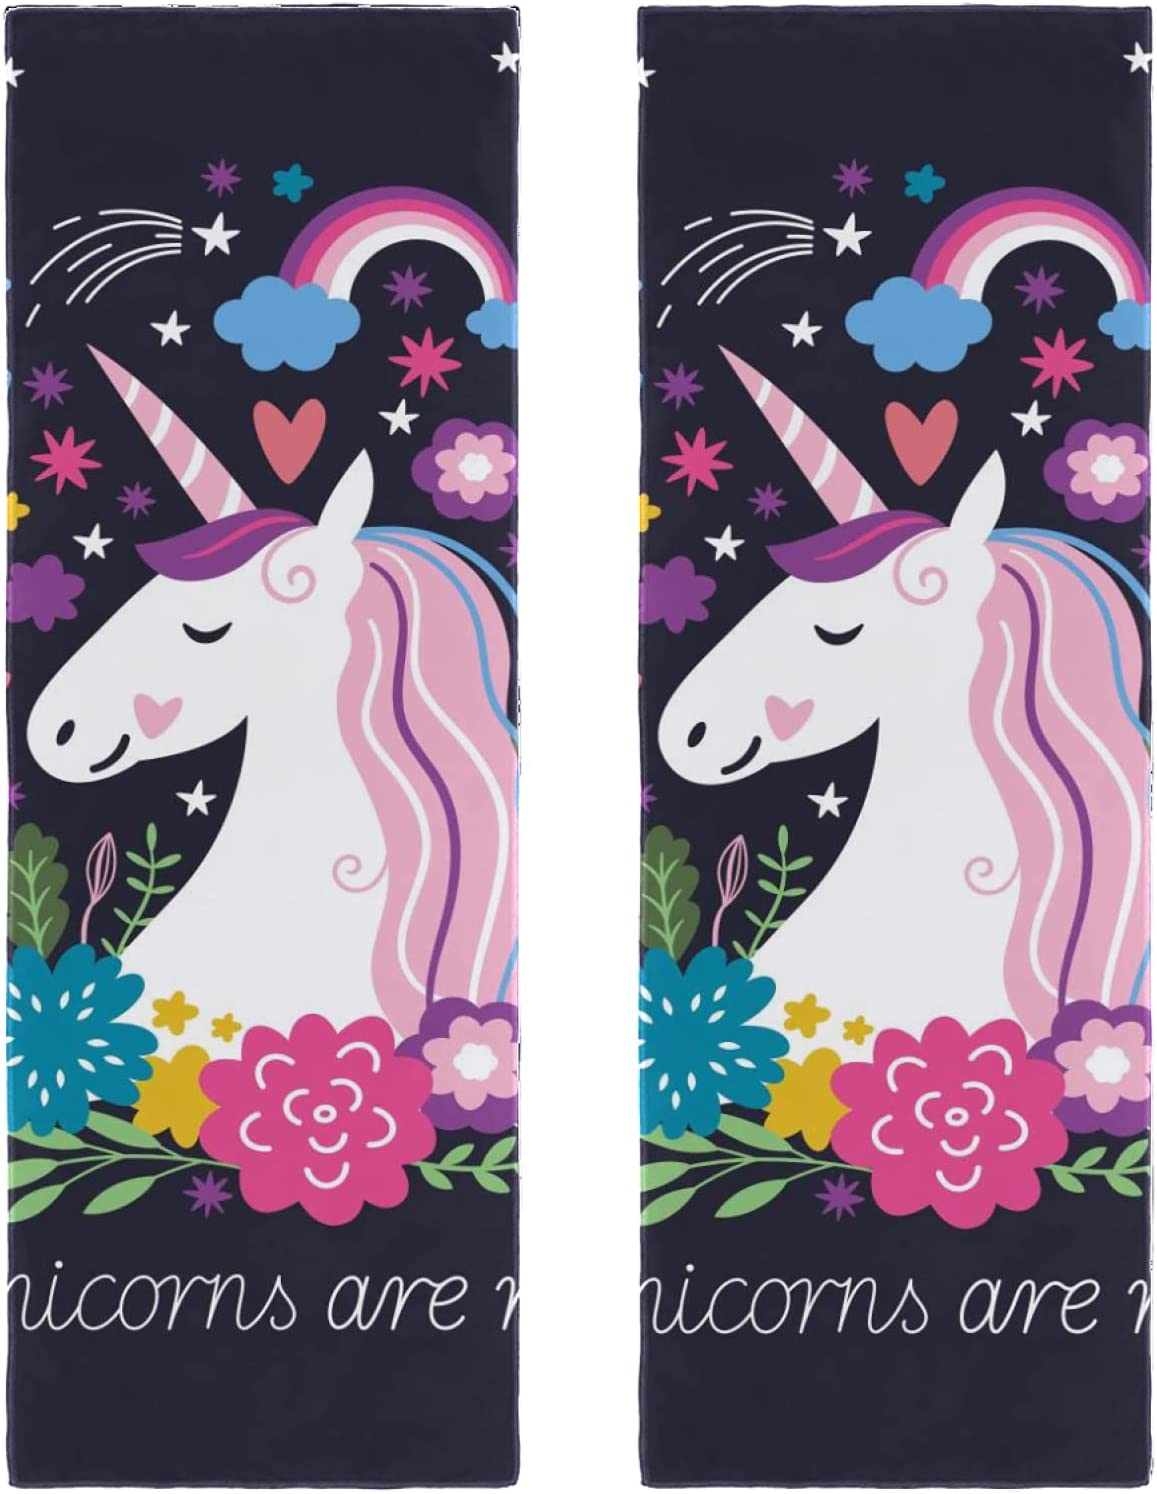 2 Packs Yoga Towel for Gym and ar Dealing full price reduction Beach Daily bargain sale Unicorn Camping Travel